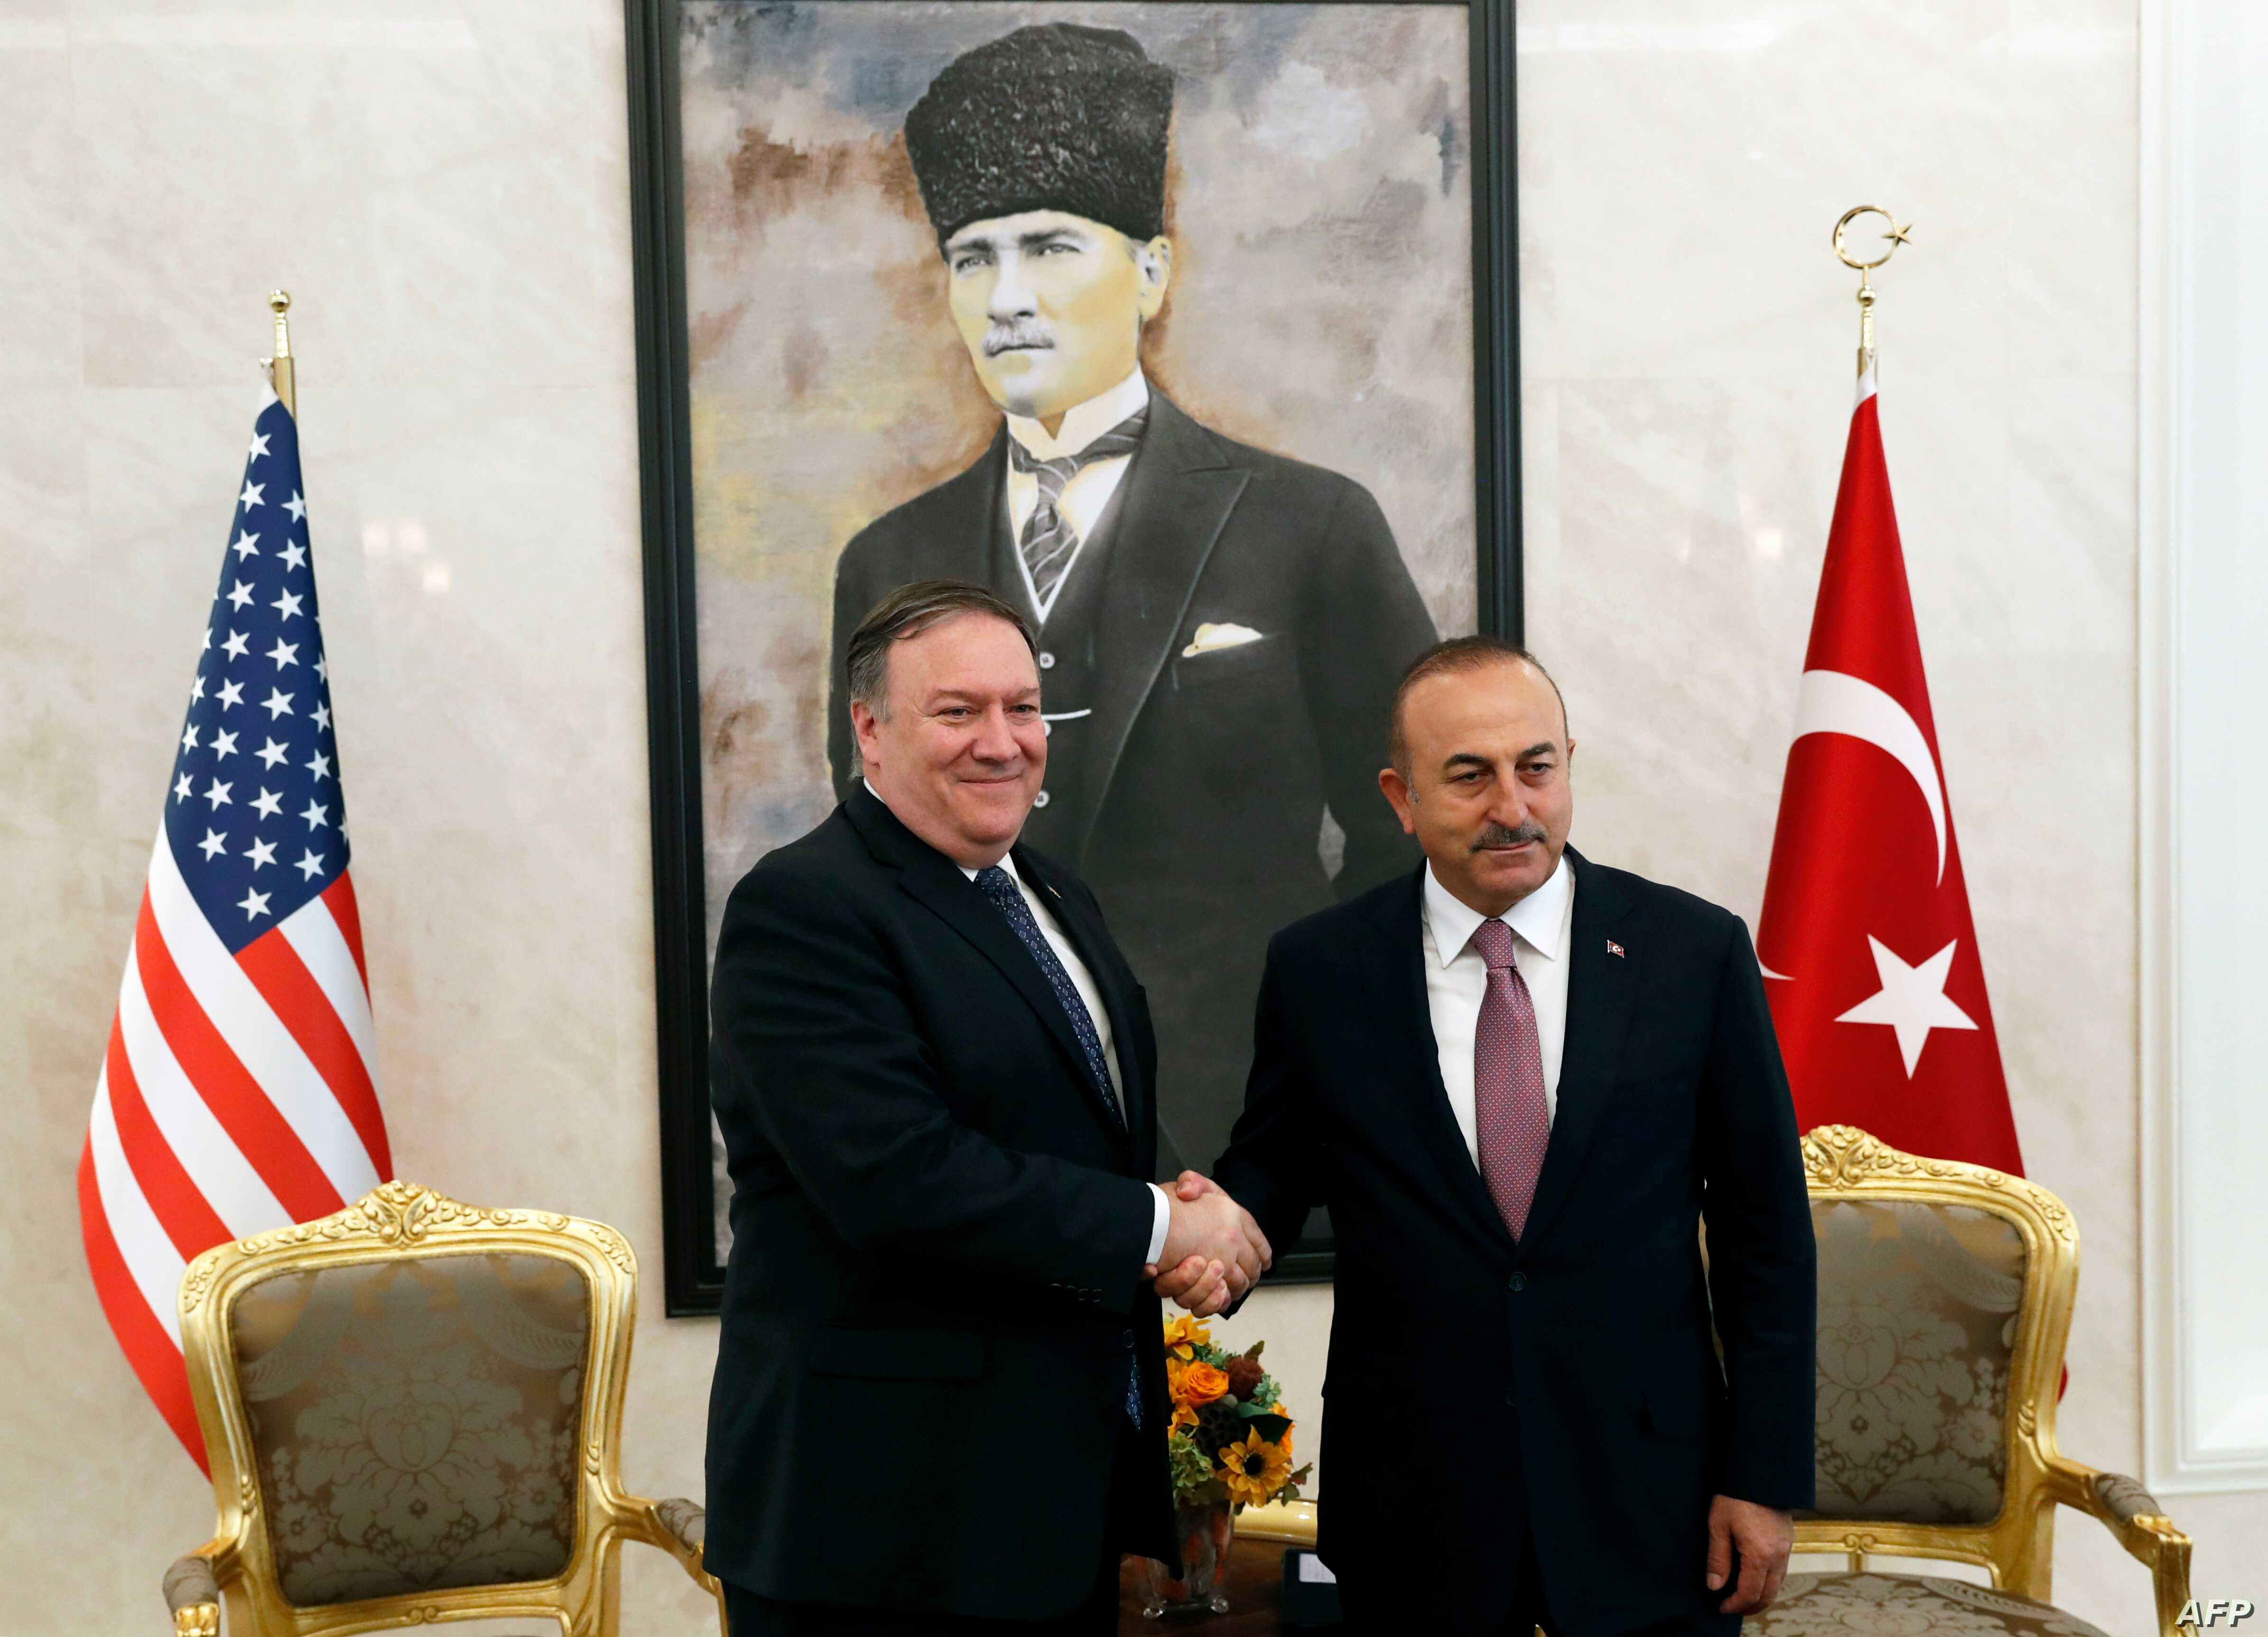 U.S. Secretary of State Mike Pompeo (L) meets with Turkish Foreign Minister Mevlut Cavusoglu in Ankara